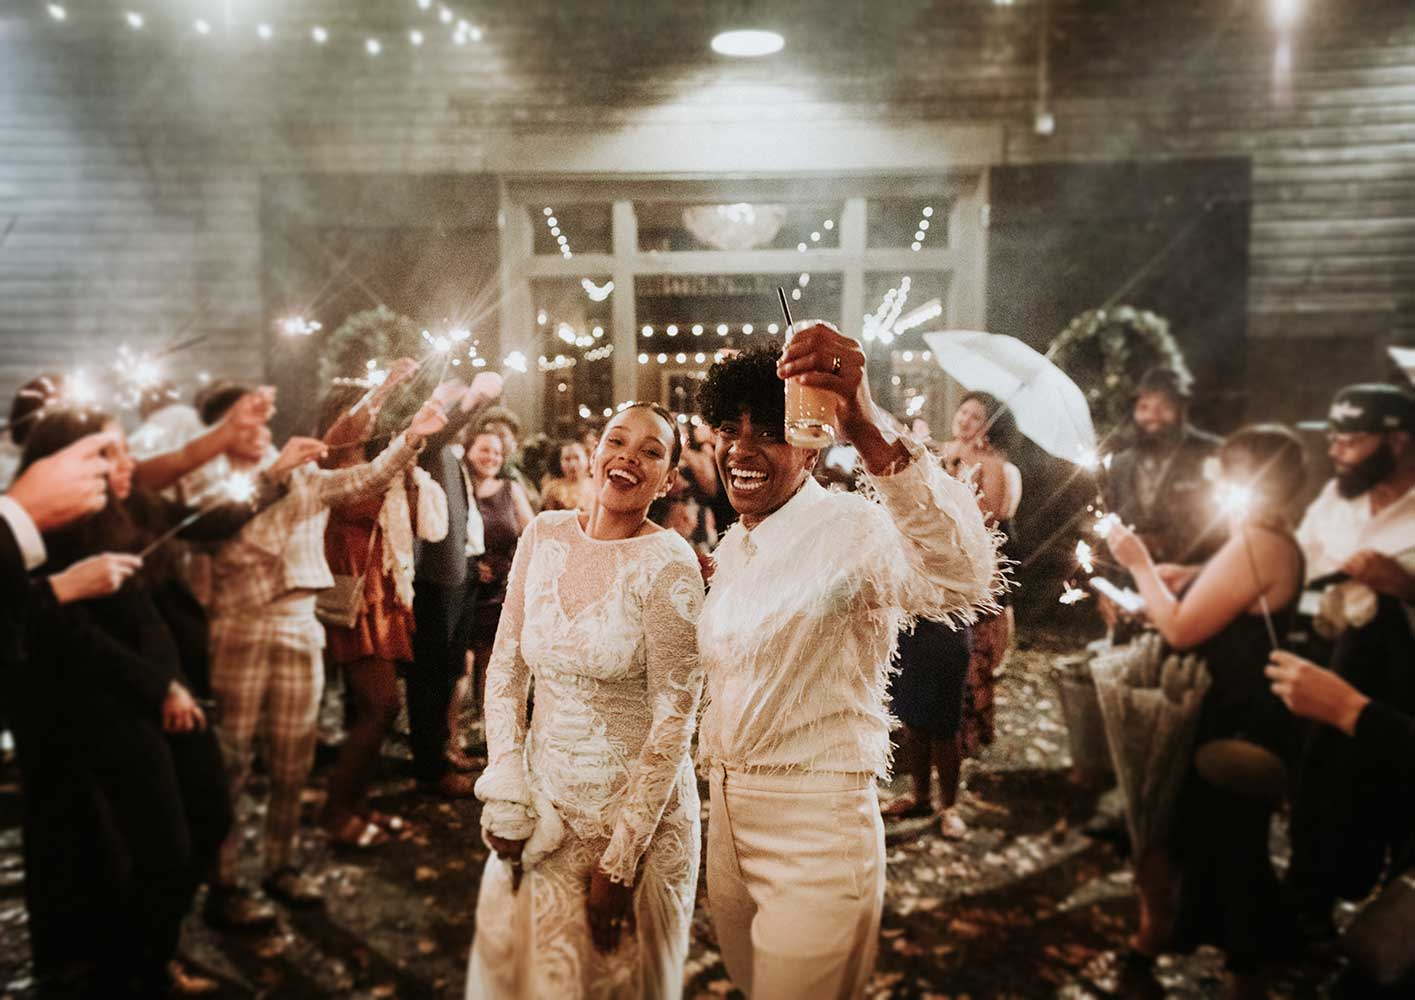 Day-of event coordination is included at Roxbury Barn and Estate